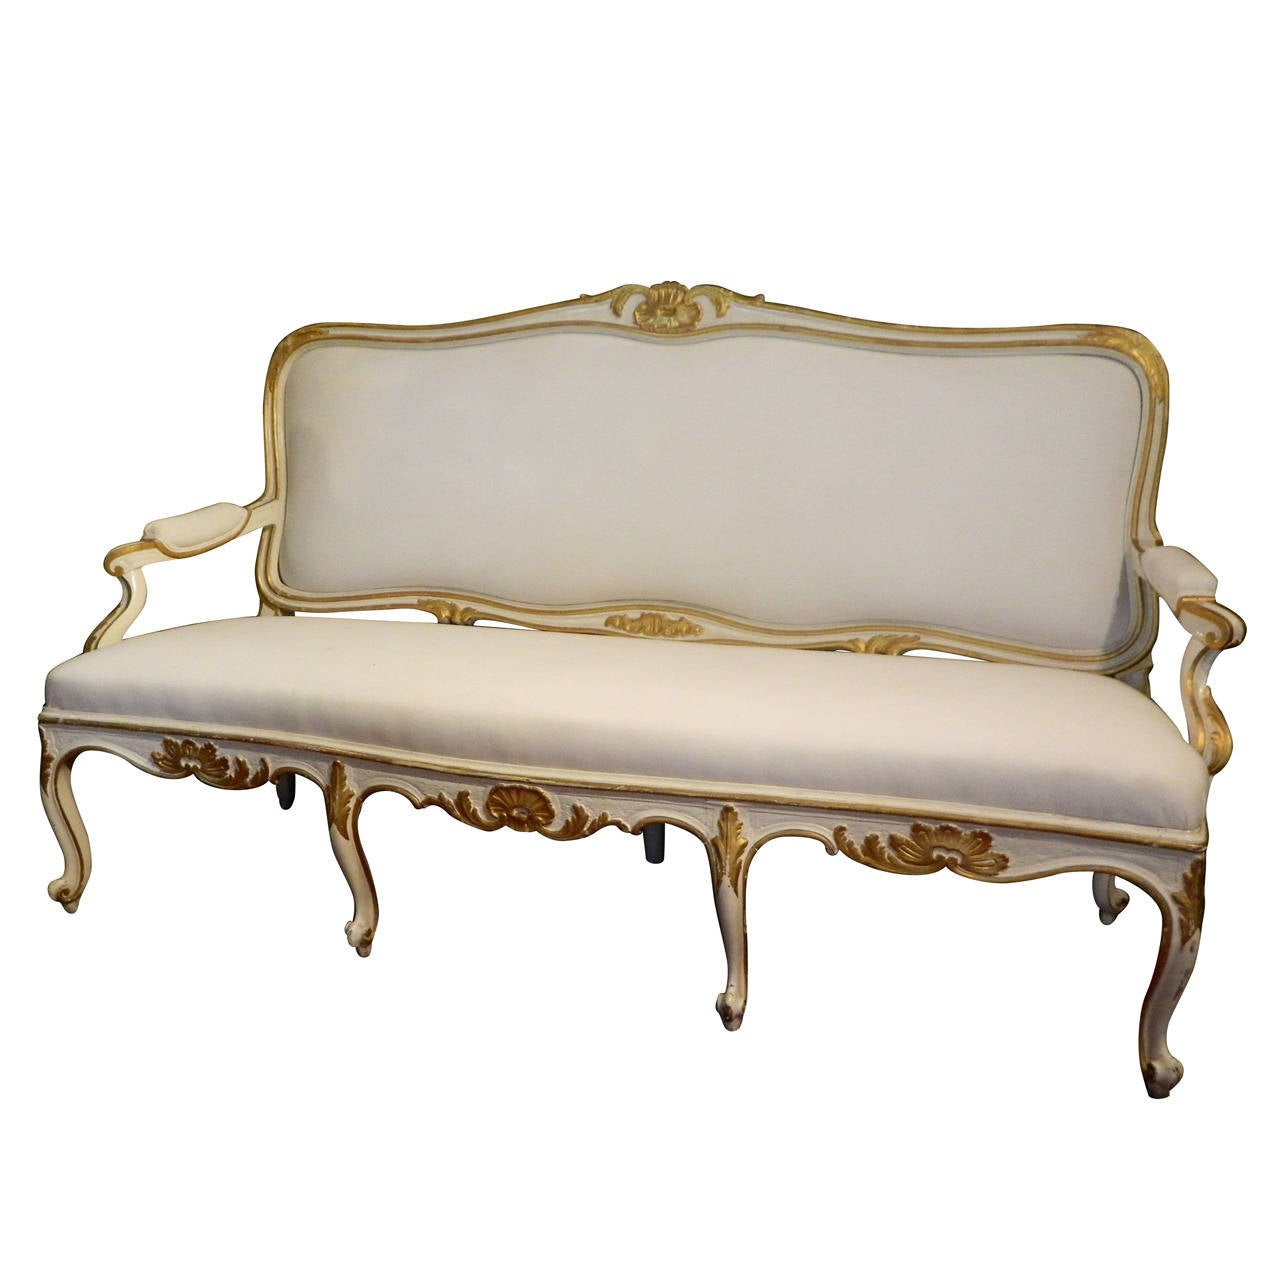 gustavian painted and parcel gilt canape or sofa 19th century at 1stdibs. Black Bedroom Furniture Sets. Home Design Ideas